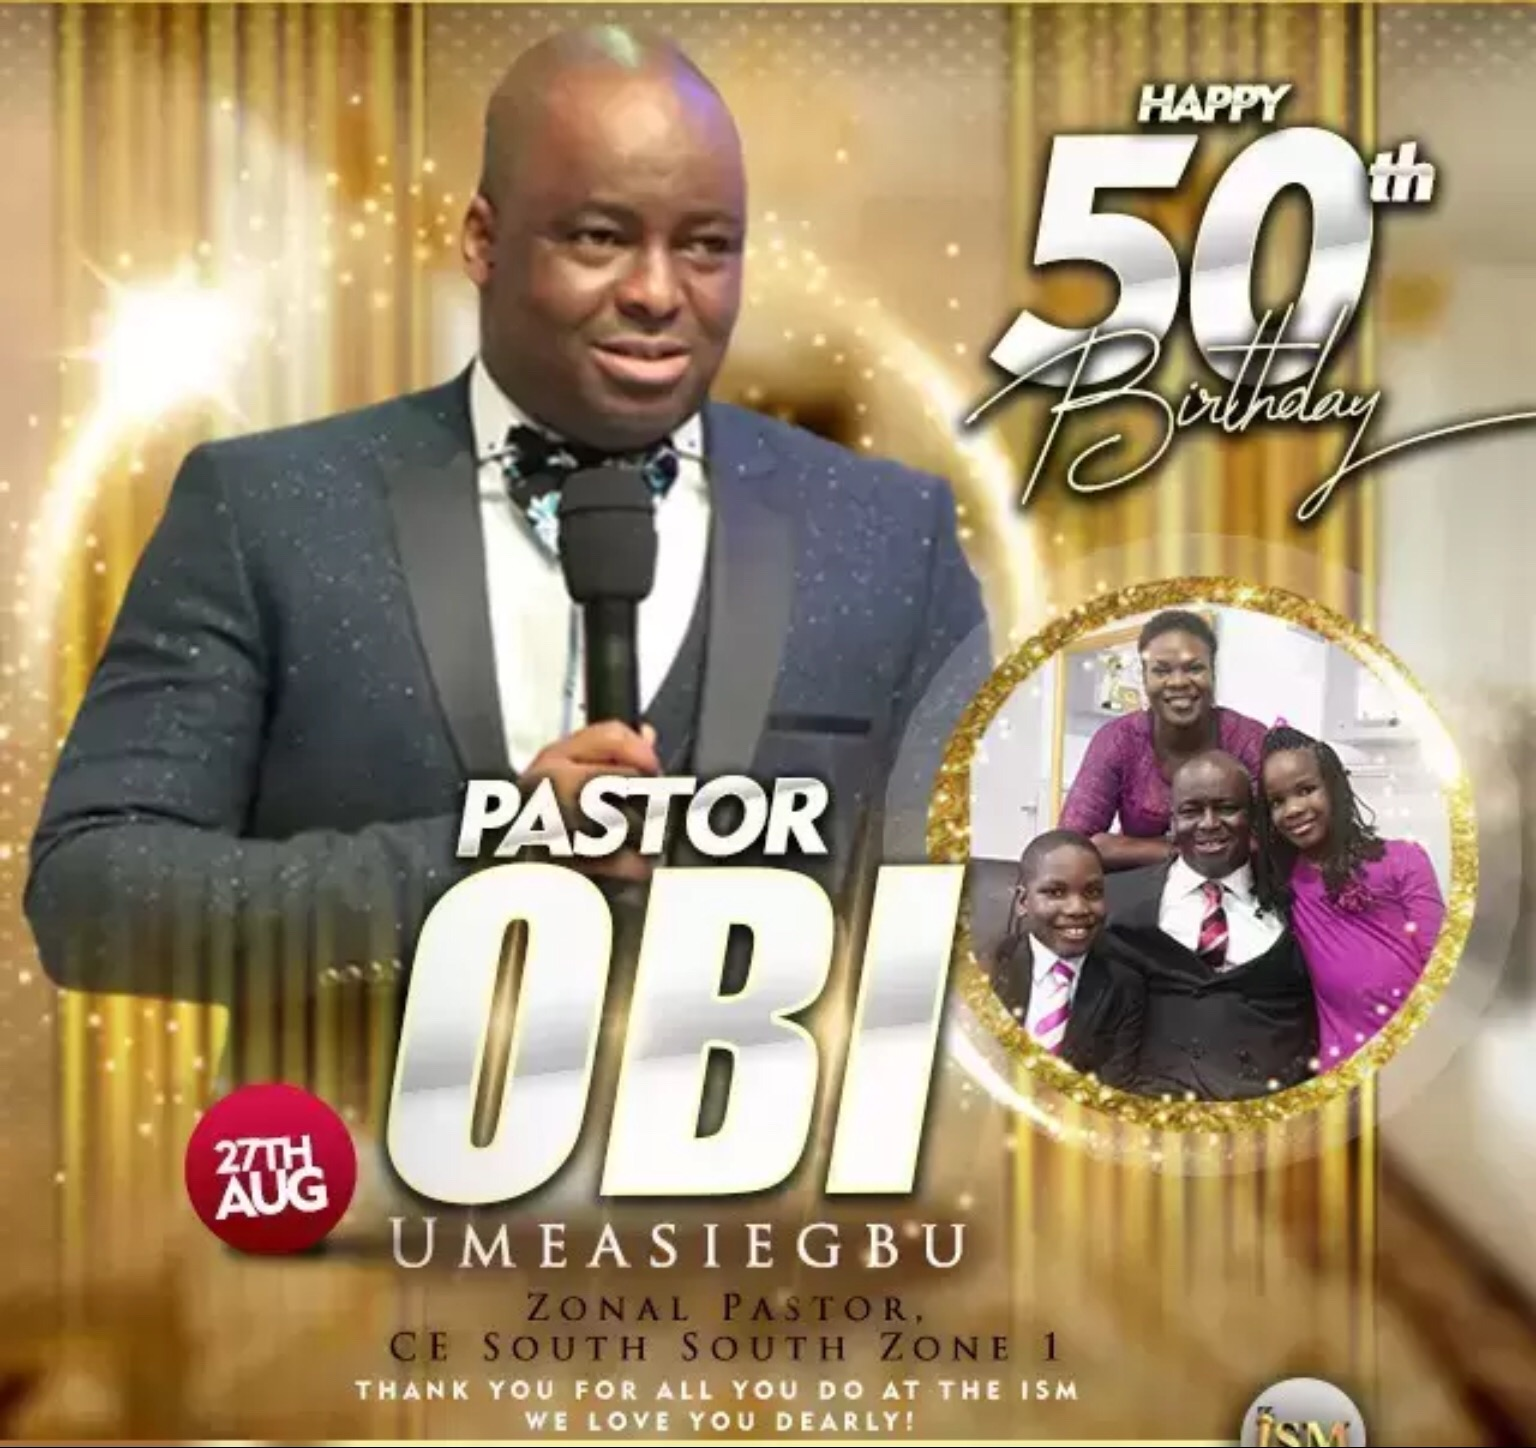 HBD esteemed Pastor Obi. We